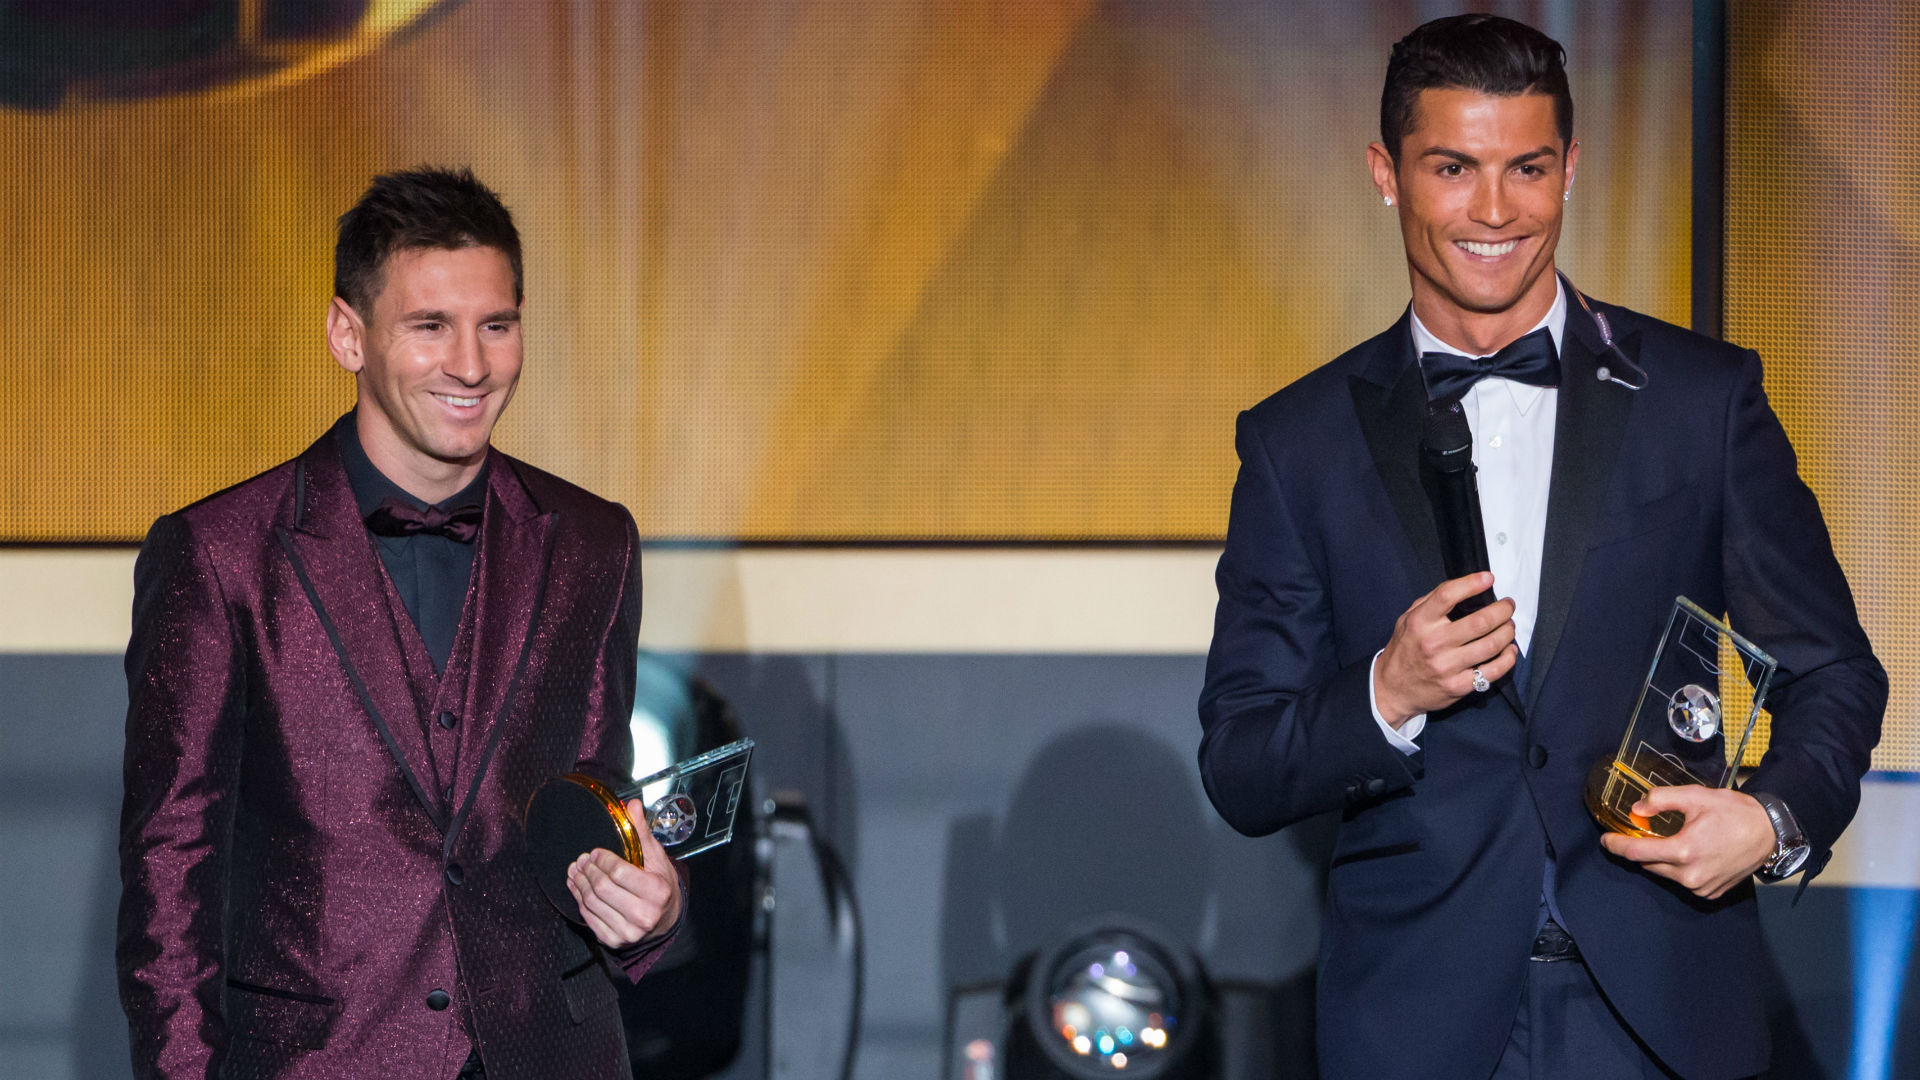 The records Messi and Ronaldo could break in 2020